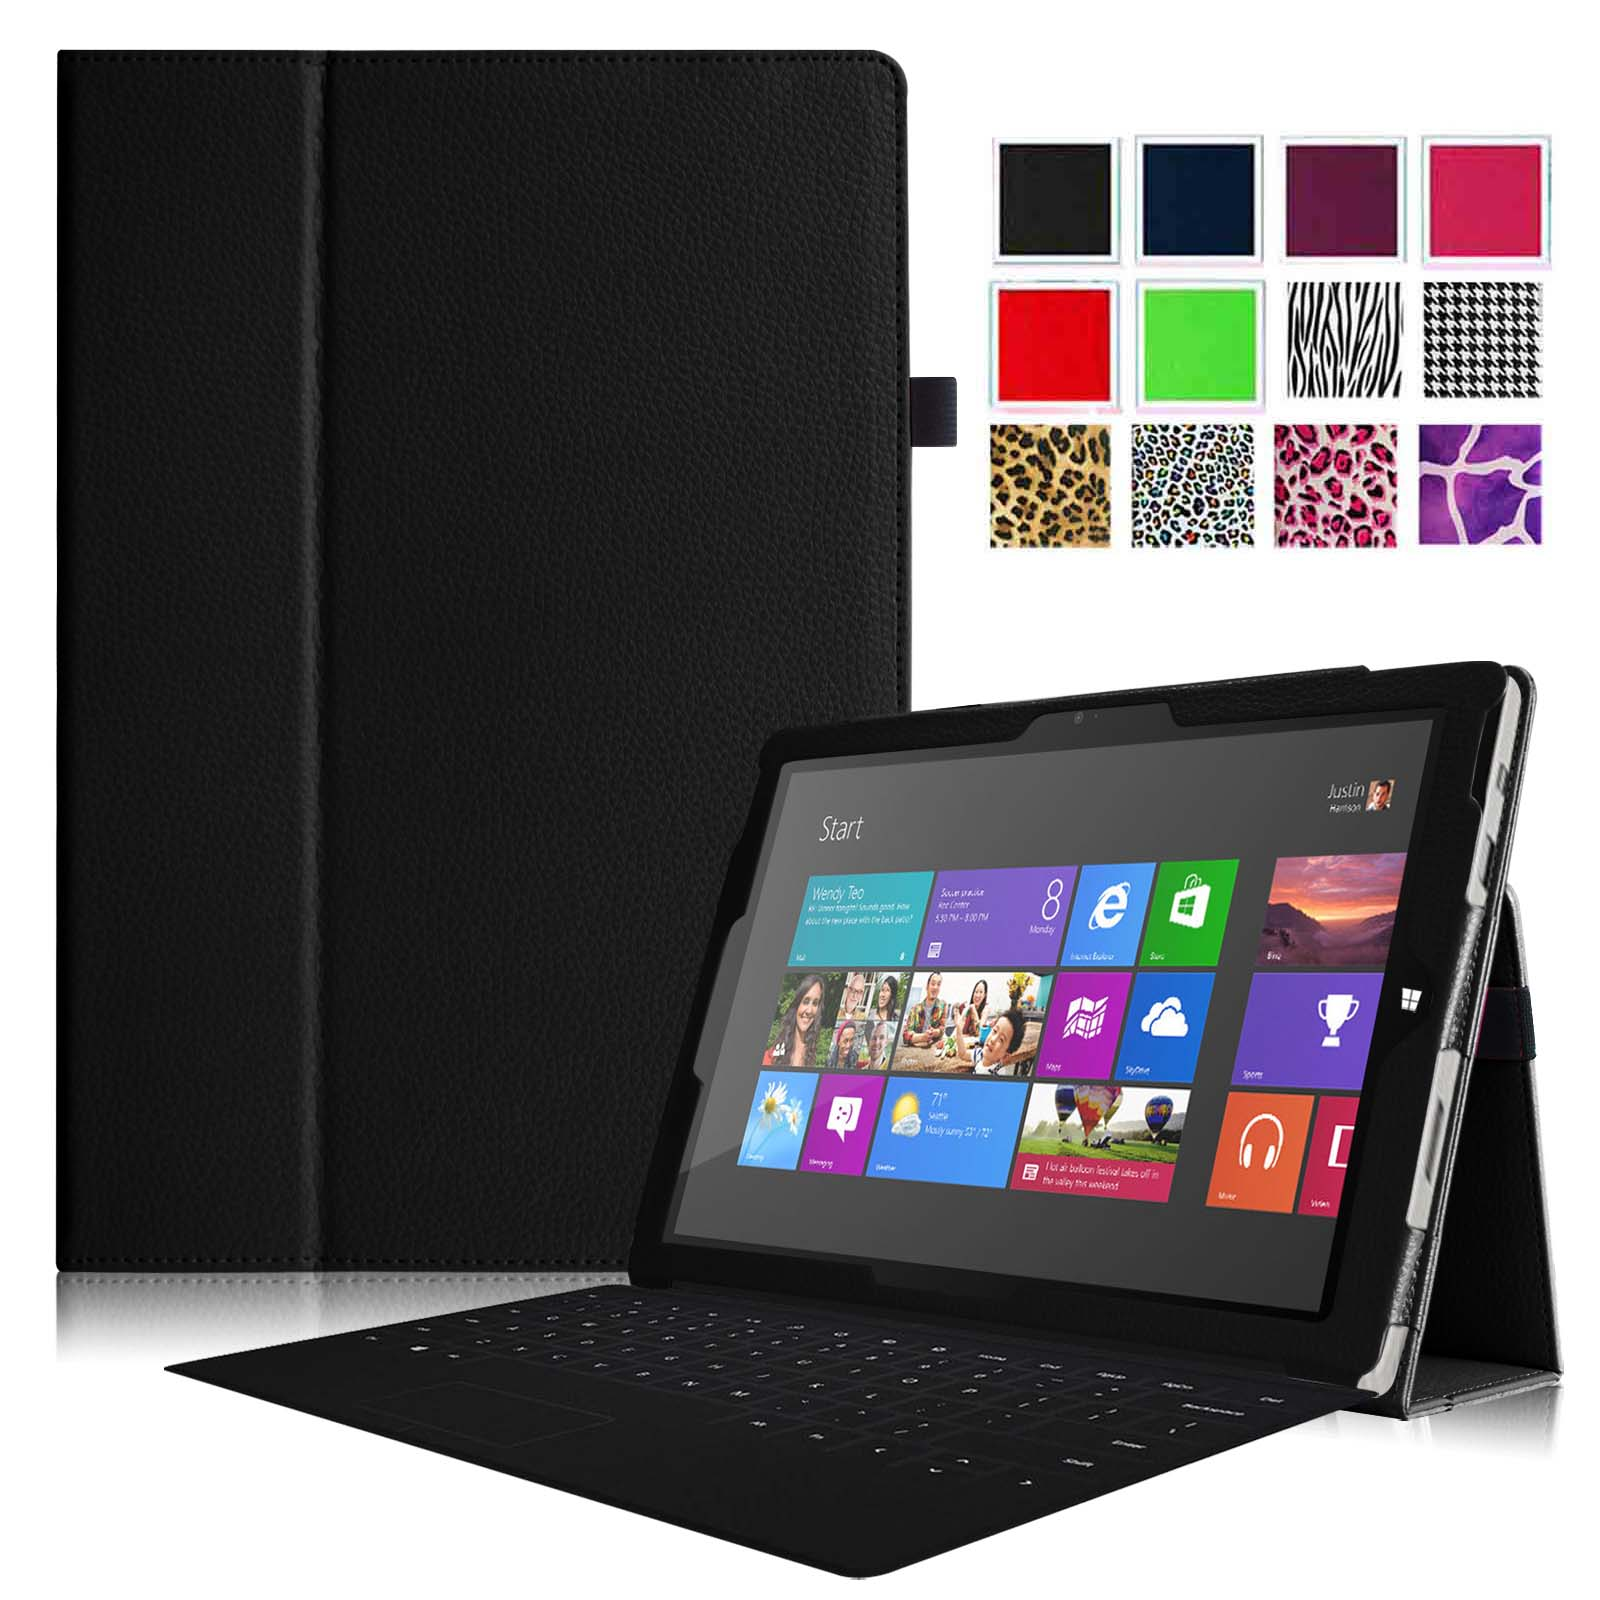 Fintie Case for Microsoft Surface Pro 3 - Slim Fit PU Leather Folio Stand Cover with Stylus Holder, Black